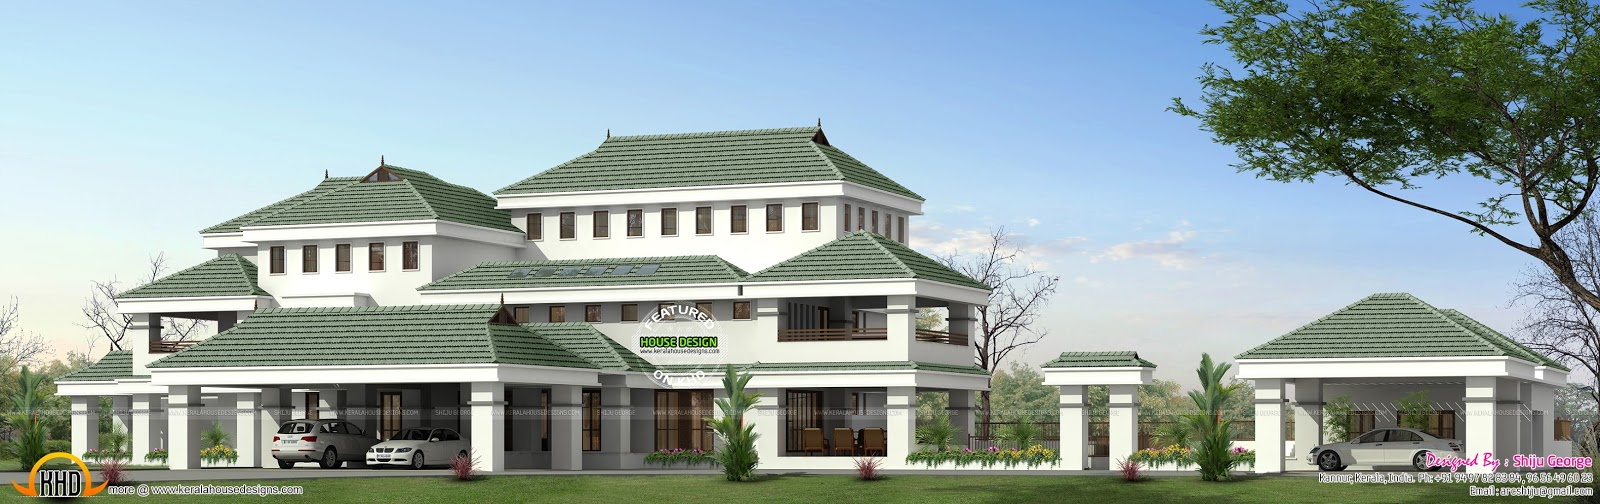 10000 sq ft house plan kerala home design and floor plans for 10000 square feet building